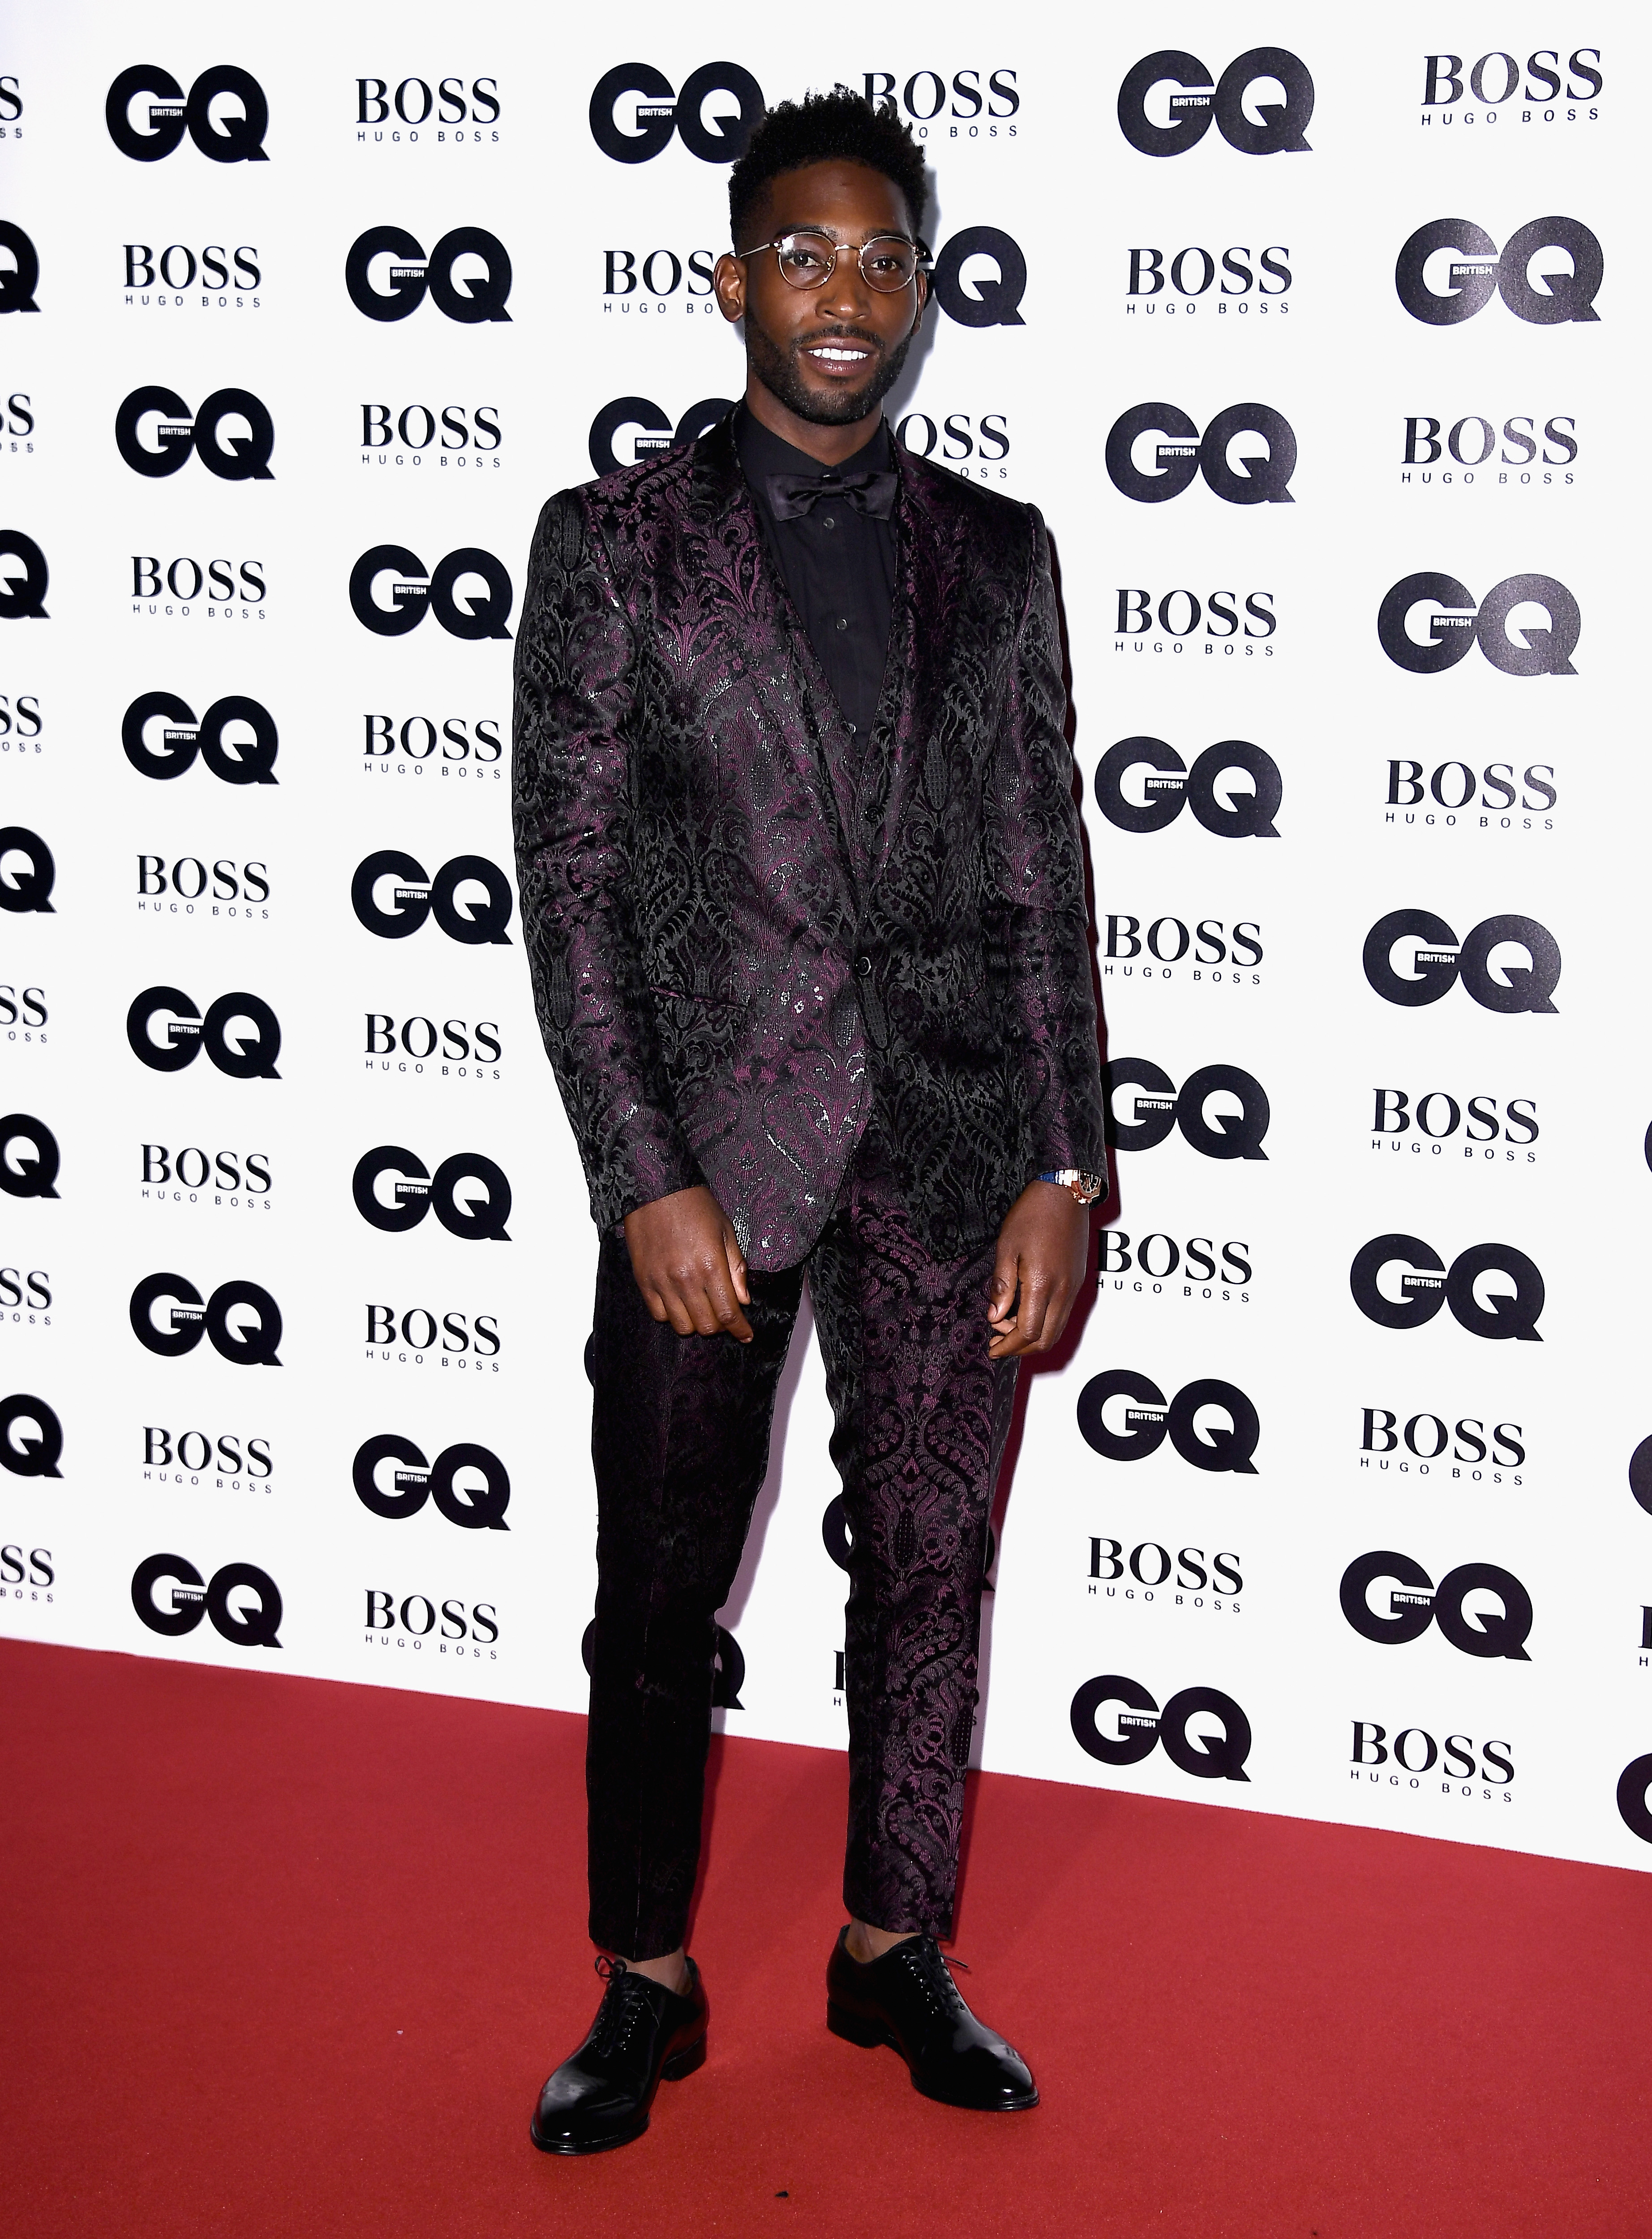 LONDON, ENGLAND - SEPTEMBER 05:  Tinie Tempah attends the GQ Men Of The Year Awards at the Tate Modern on September 5, 2017 in London, England.  (Photo by Gareth Cattermole/Getty Images)